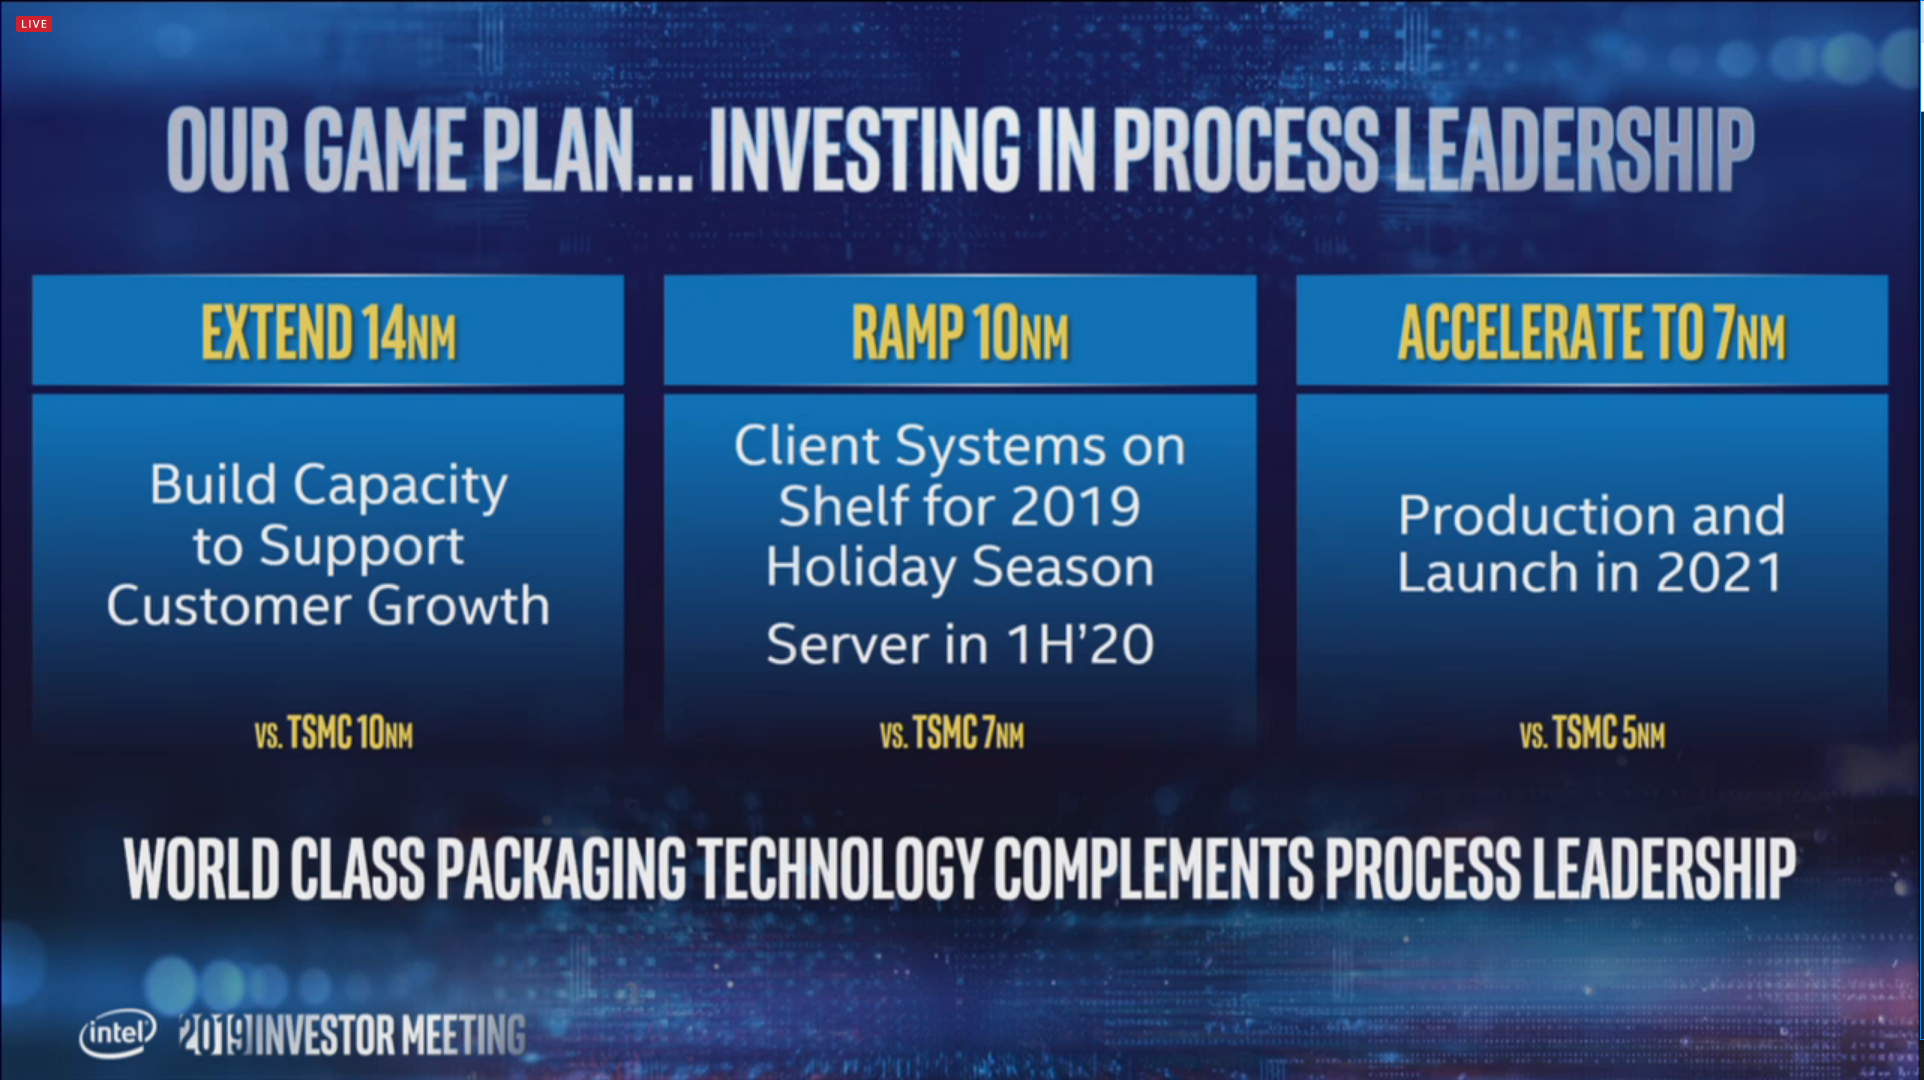 Chasing $300B market, Intel will launch its 7-nanometer chips in 2021